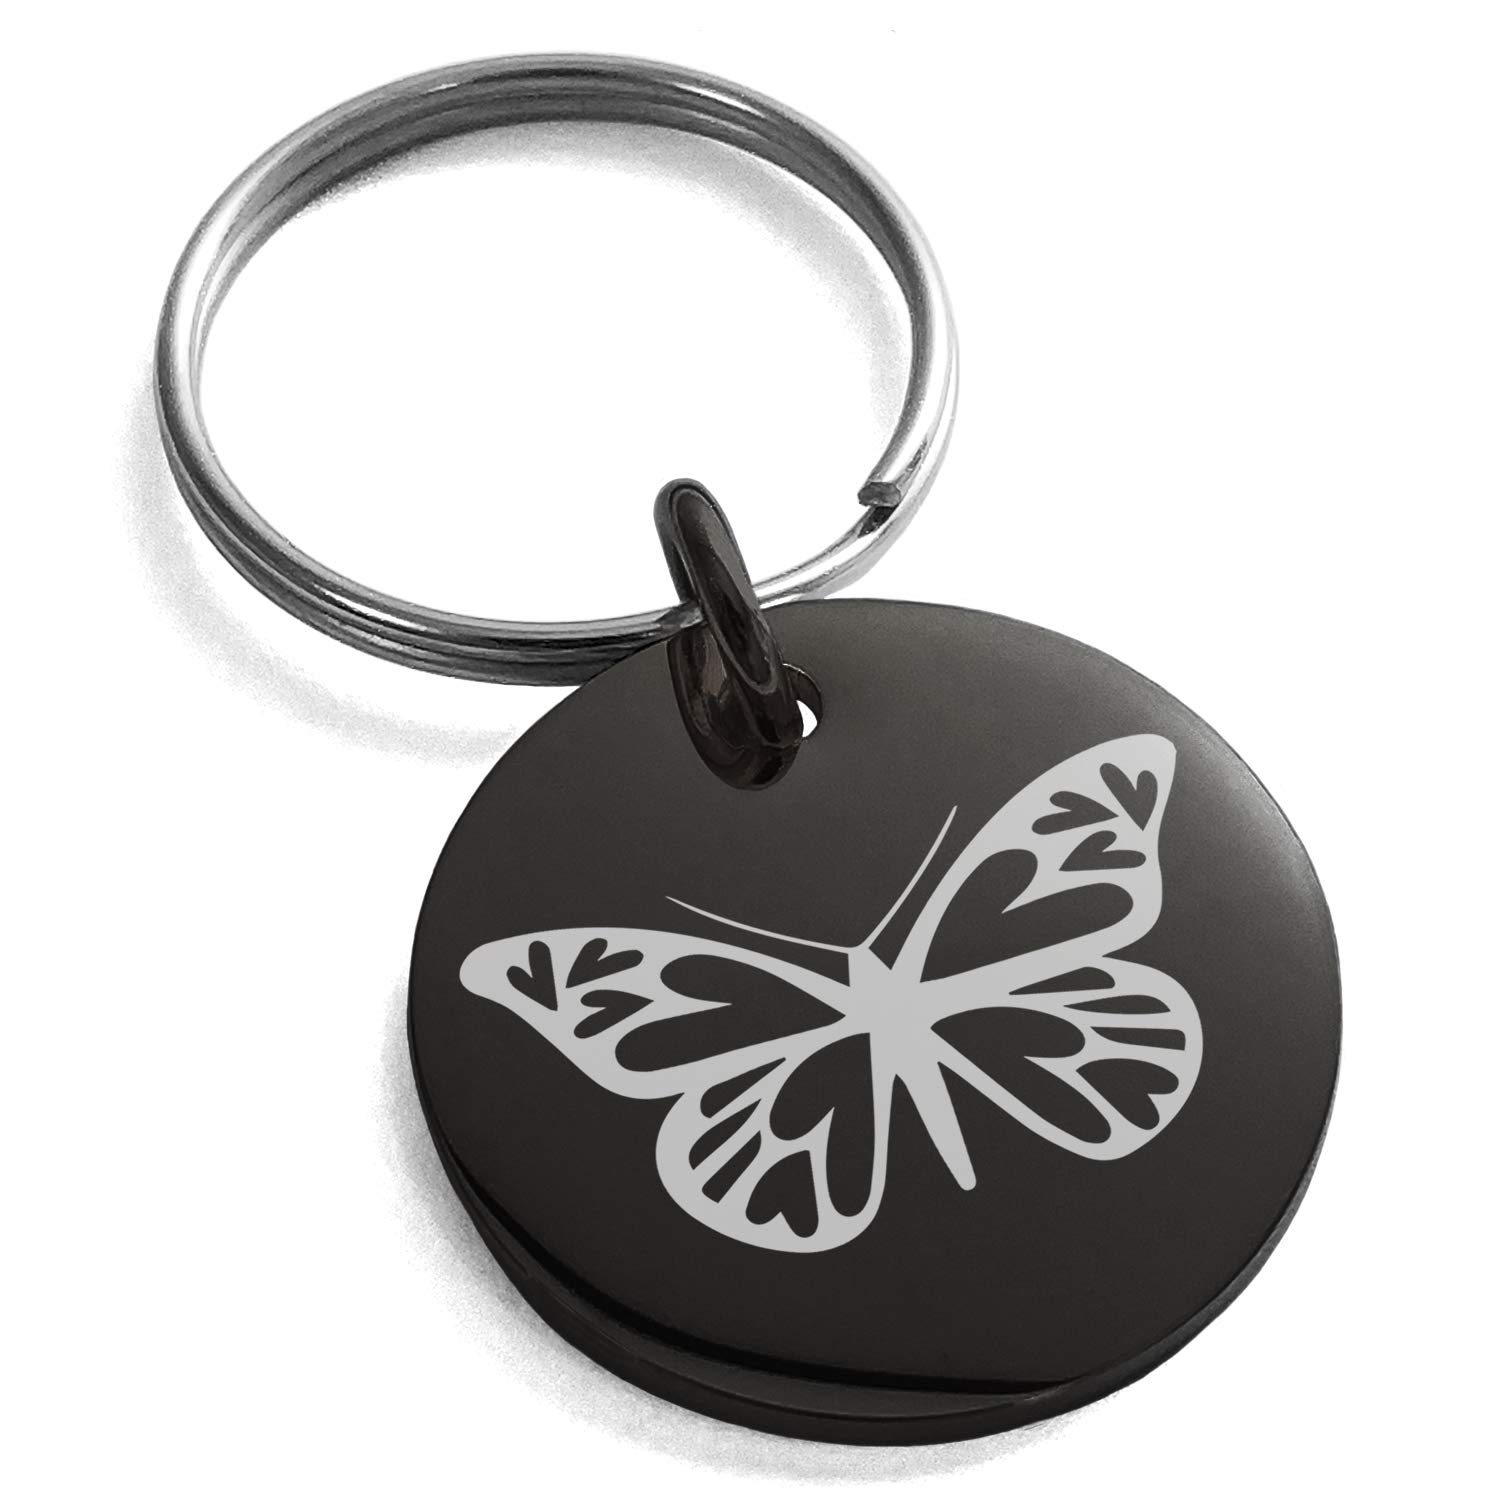 Tioneer Black Stainless Steel Love Butterfly Engraved Small Medallion Circle Charm Keychain Keyring